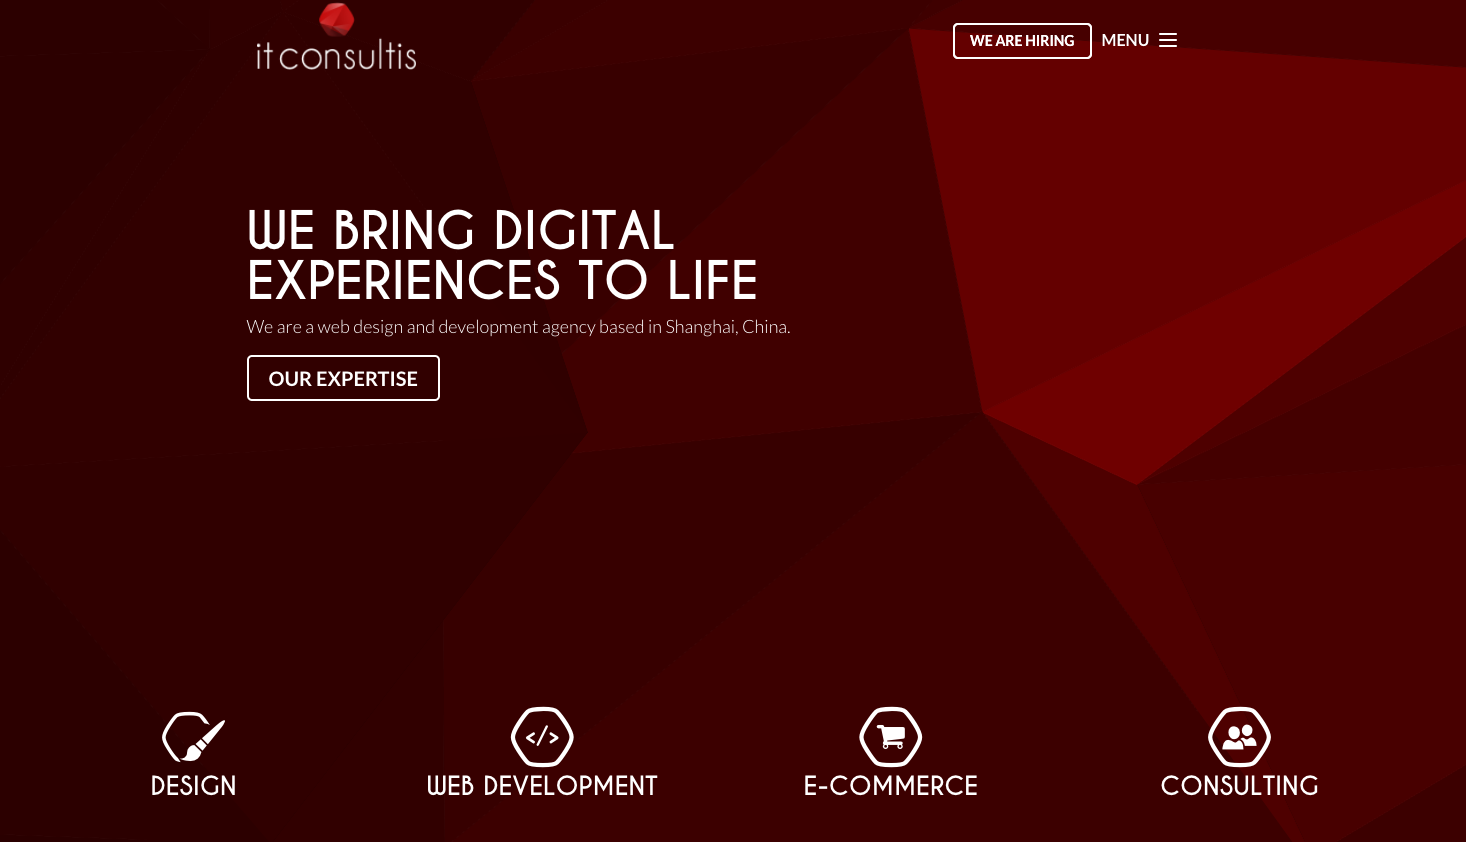 IT Consultis - Shangai - Agency - Digital